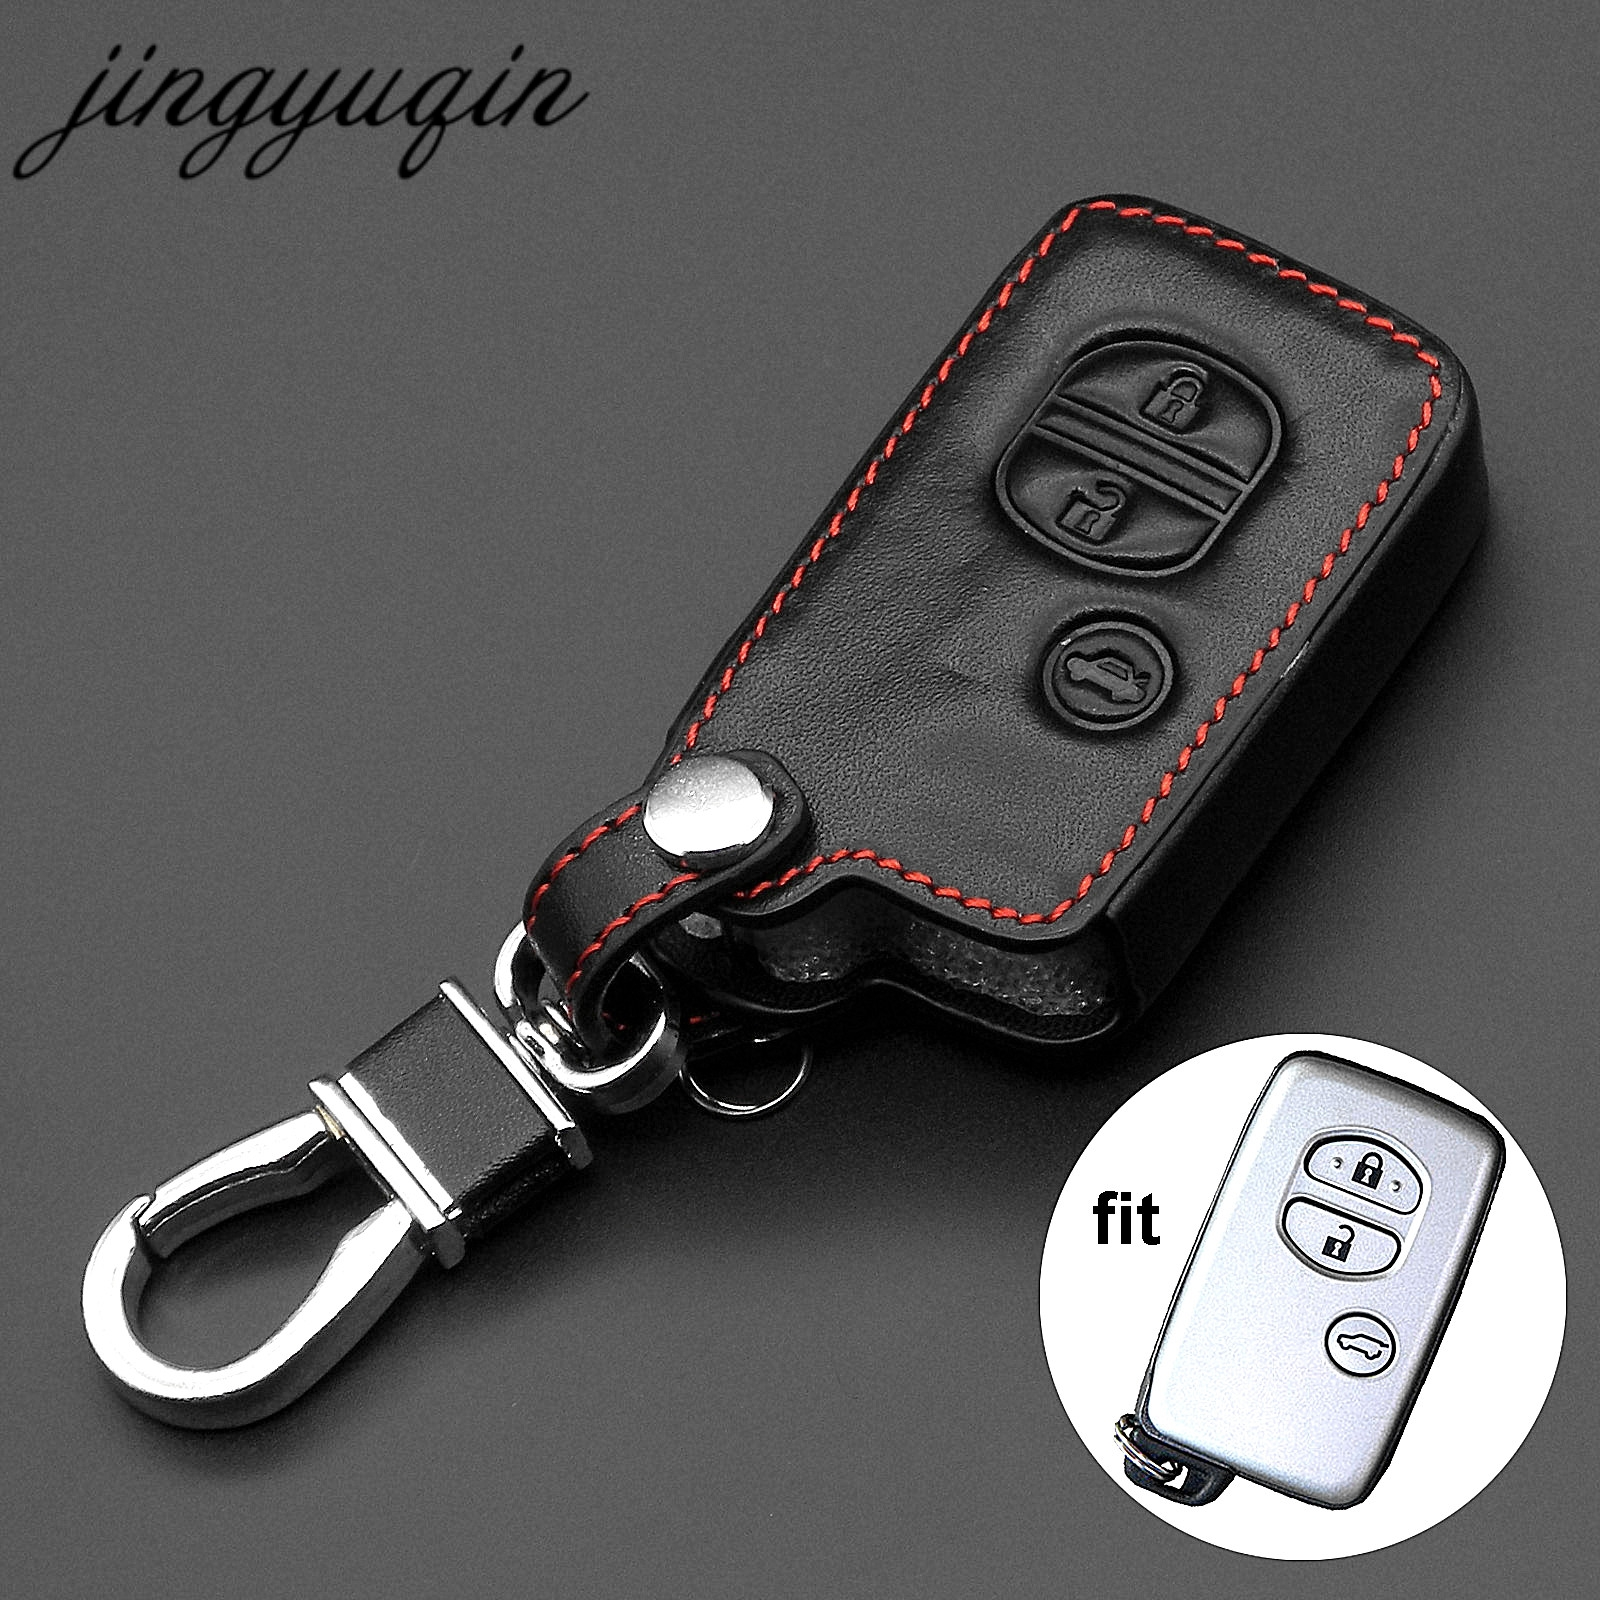 Jingyuqin Leather Car Key Case Cover For Toyota Land Cruiser Prado 150 Camry Prius Crown For Subaru Foreste Outback XV Legacy